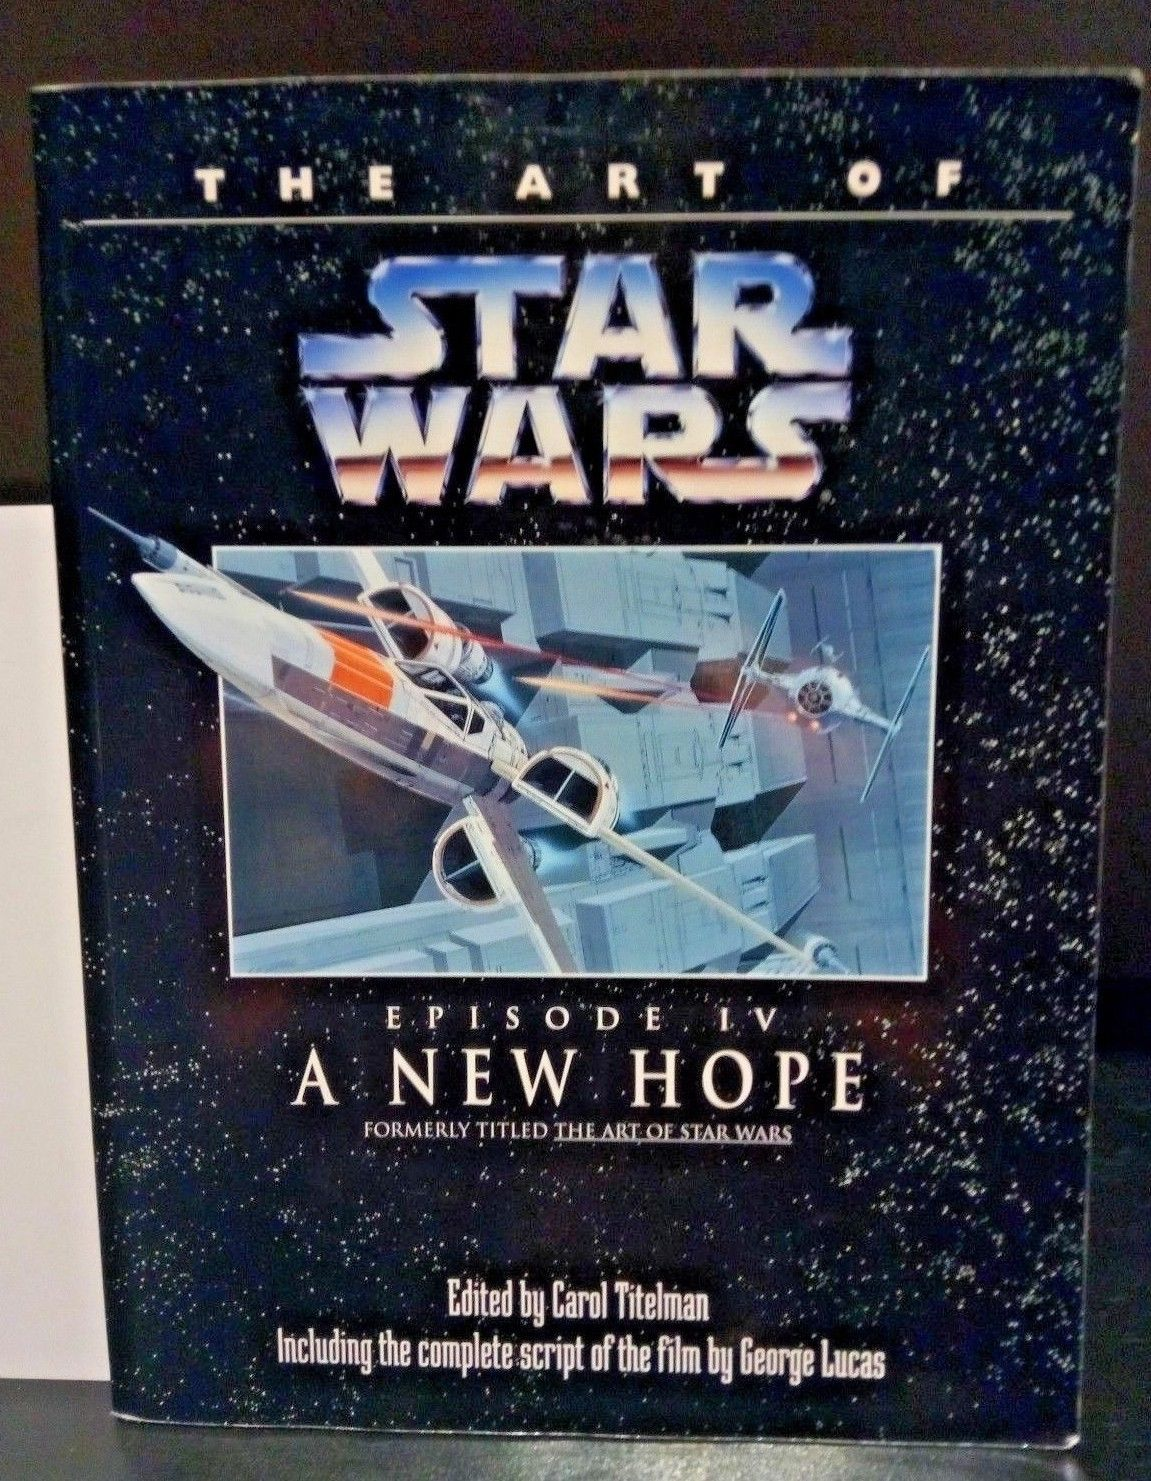 The Art Of Star Wars Episode Iv A New Hope Book Complete Script Of The Film Hipcomic